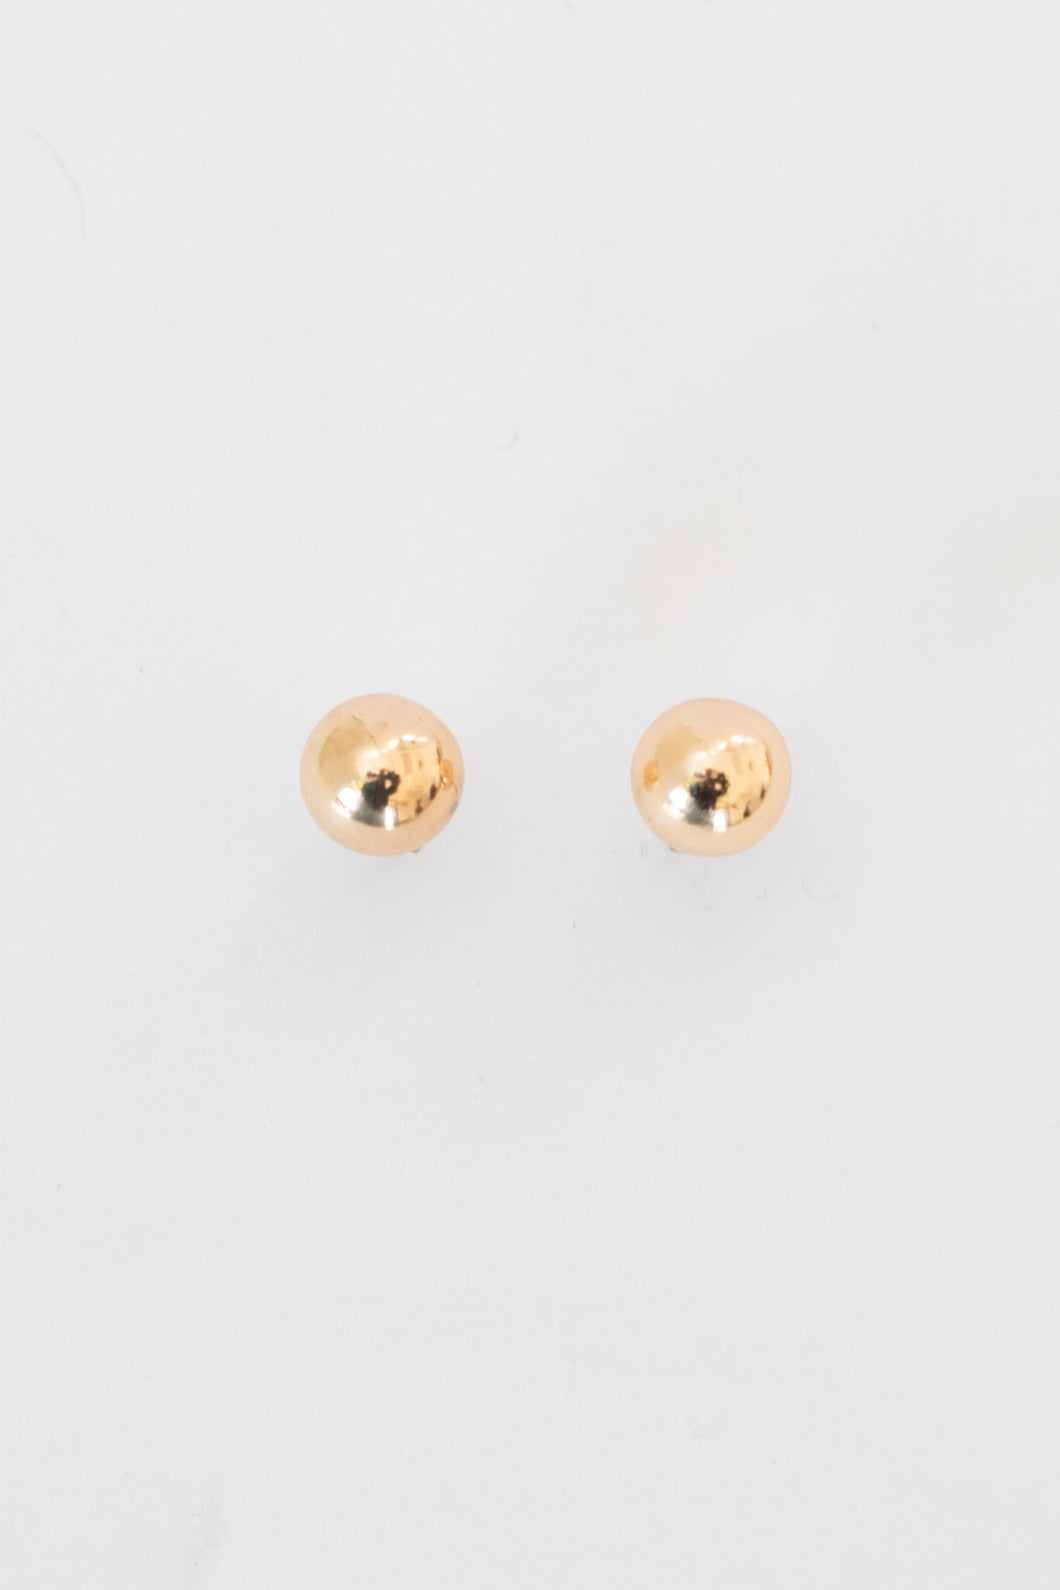 Everyday Ball Stud Earrings - Gold